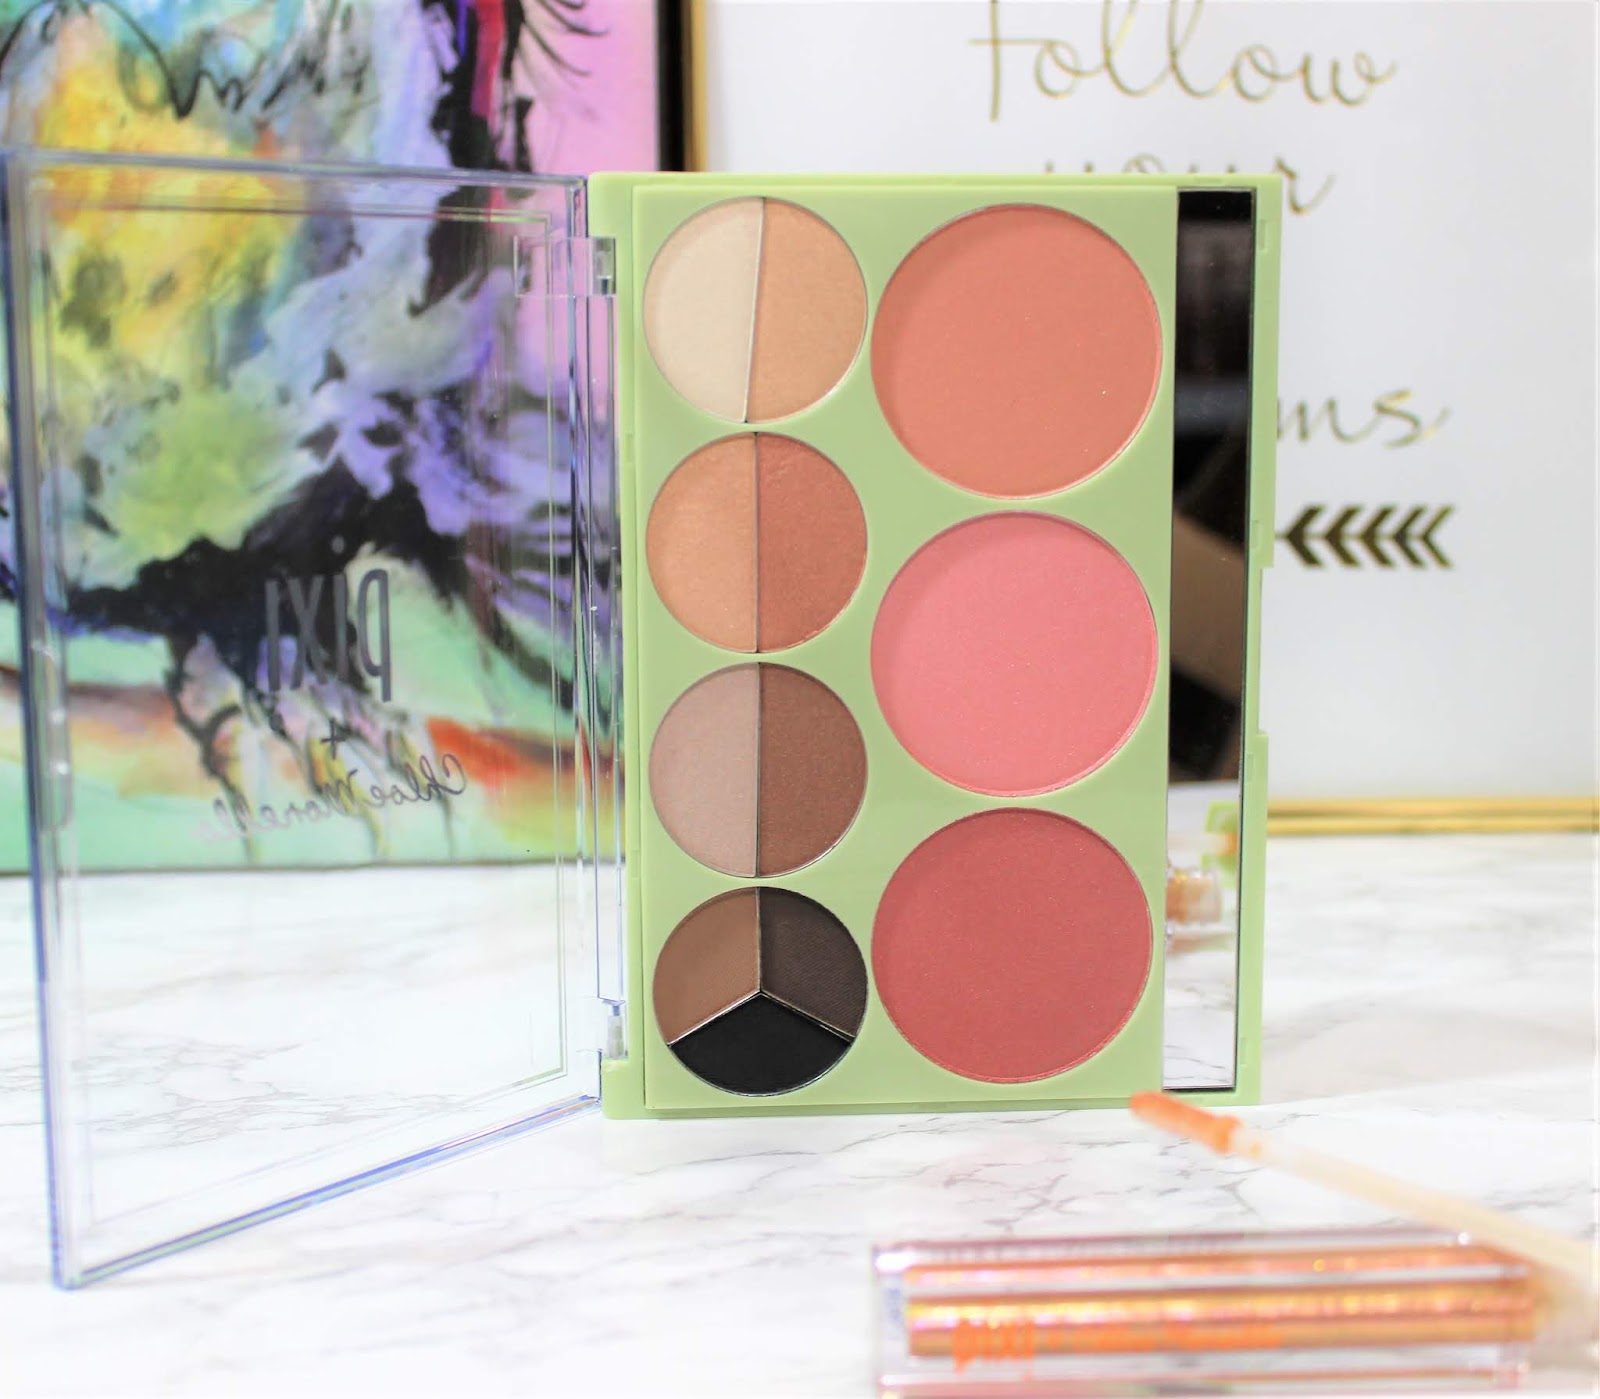 Pixi X Chloe Morello Review